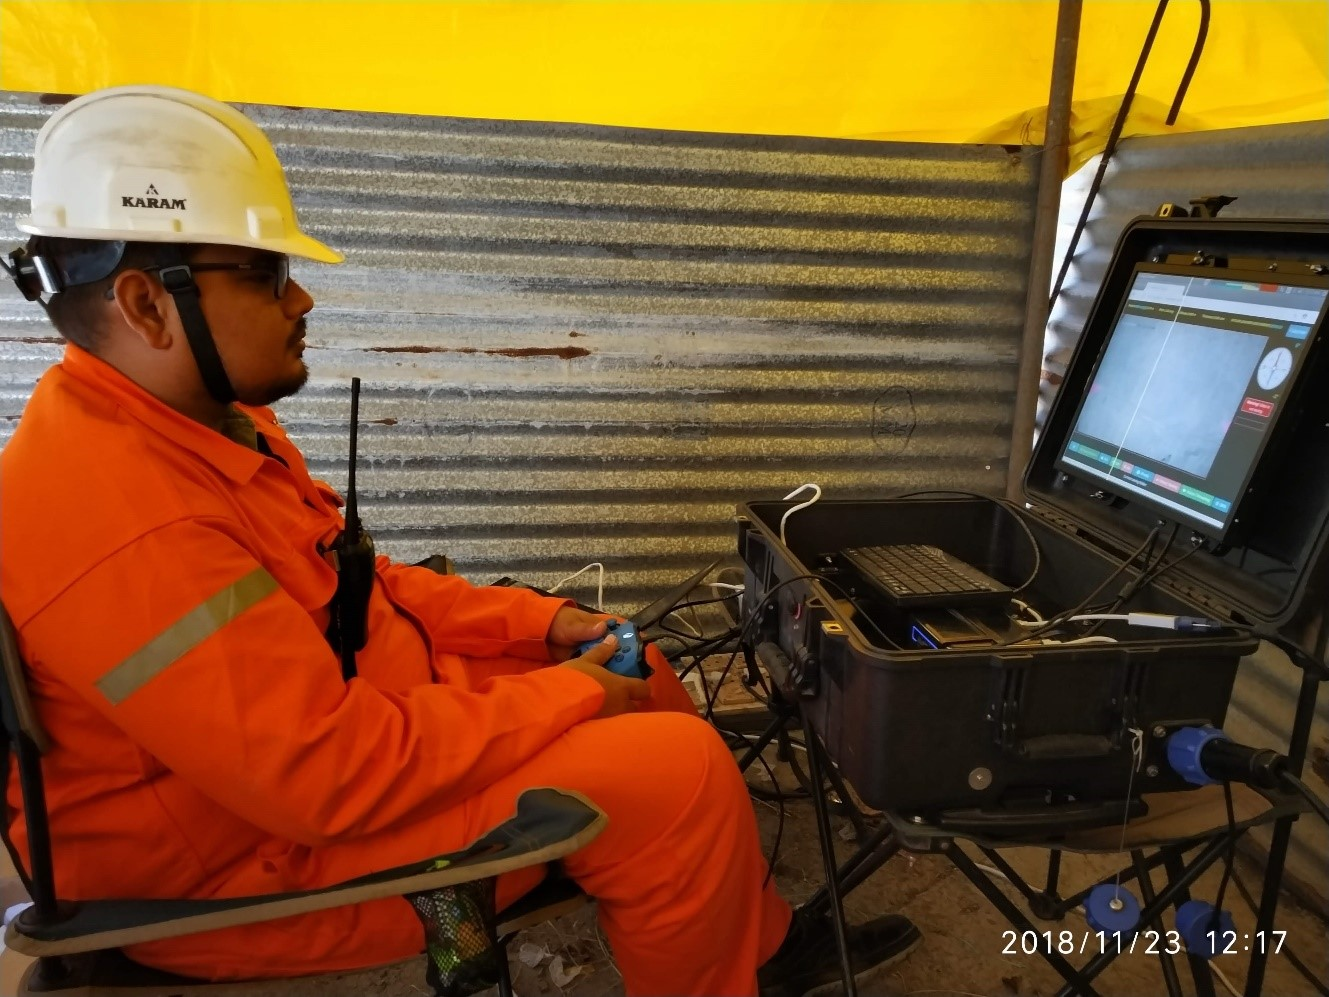 (ROV Pilot controlling the underwater drone during inspection)